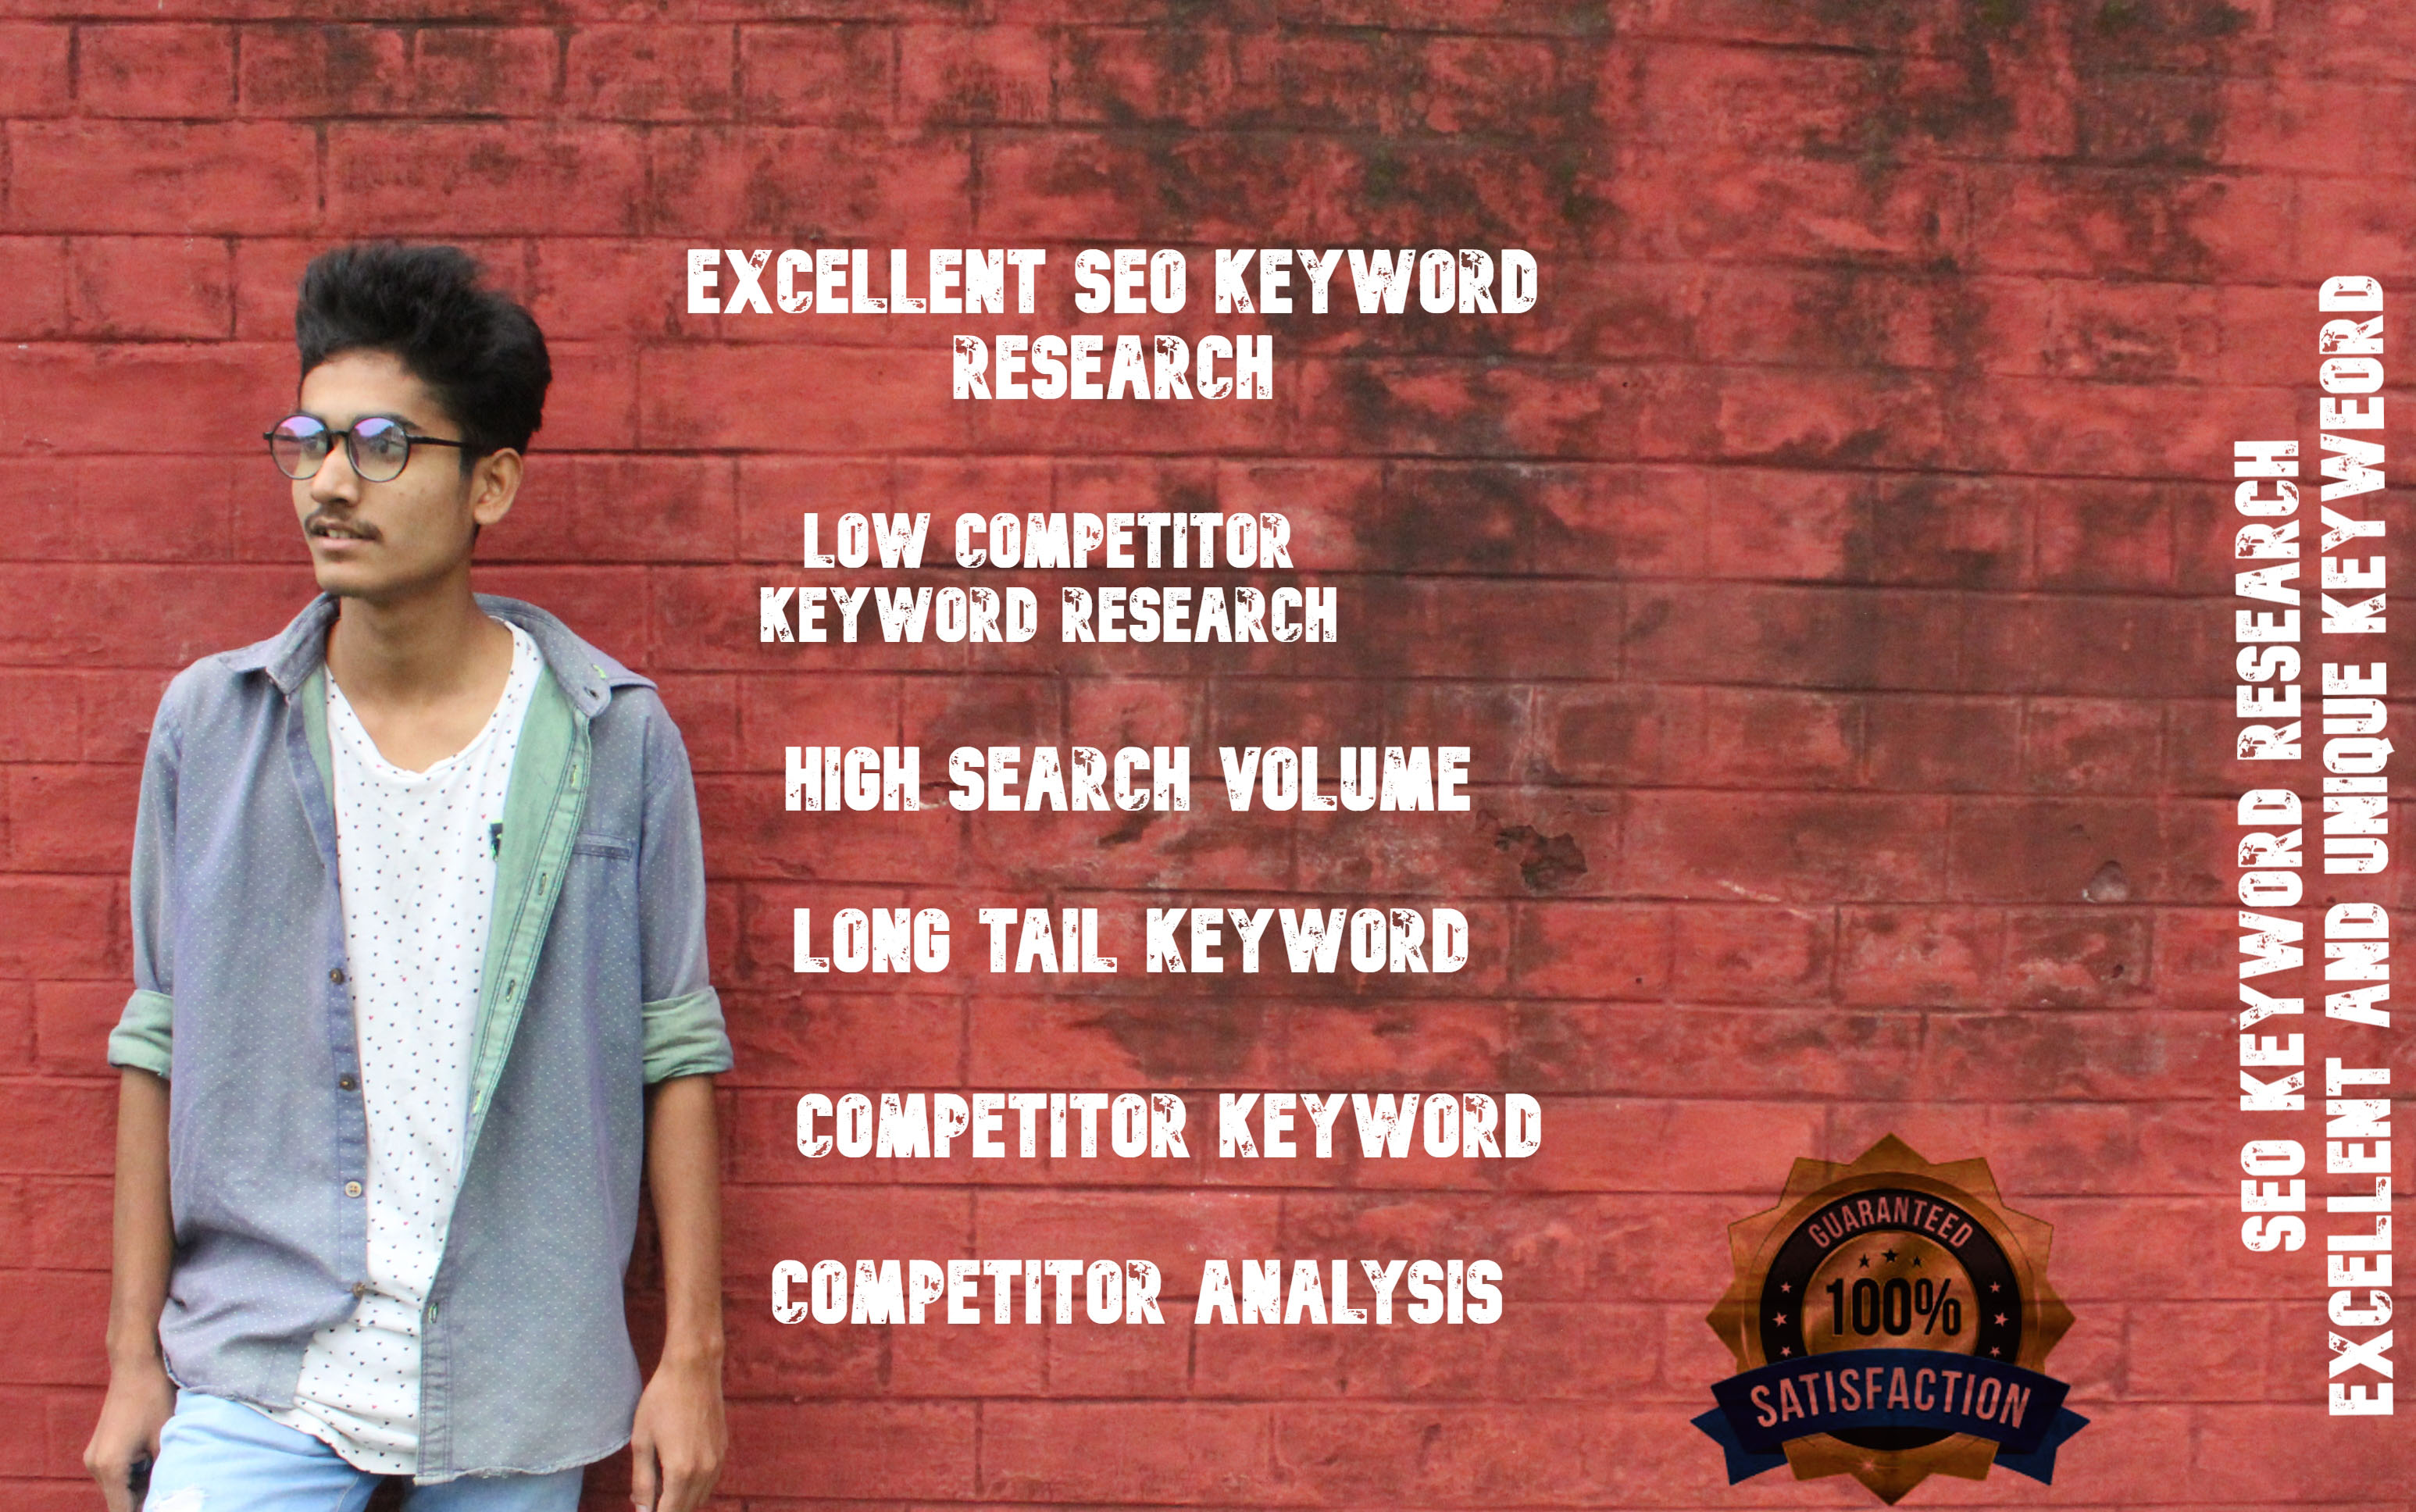 I will research excellent seo keyword and competitor analysis